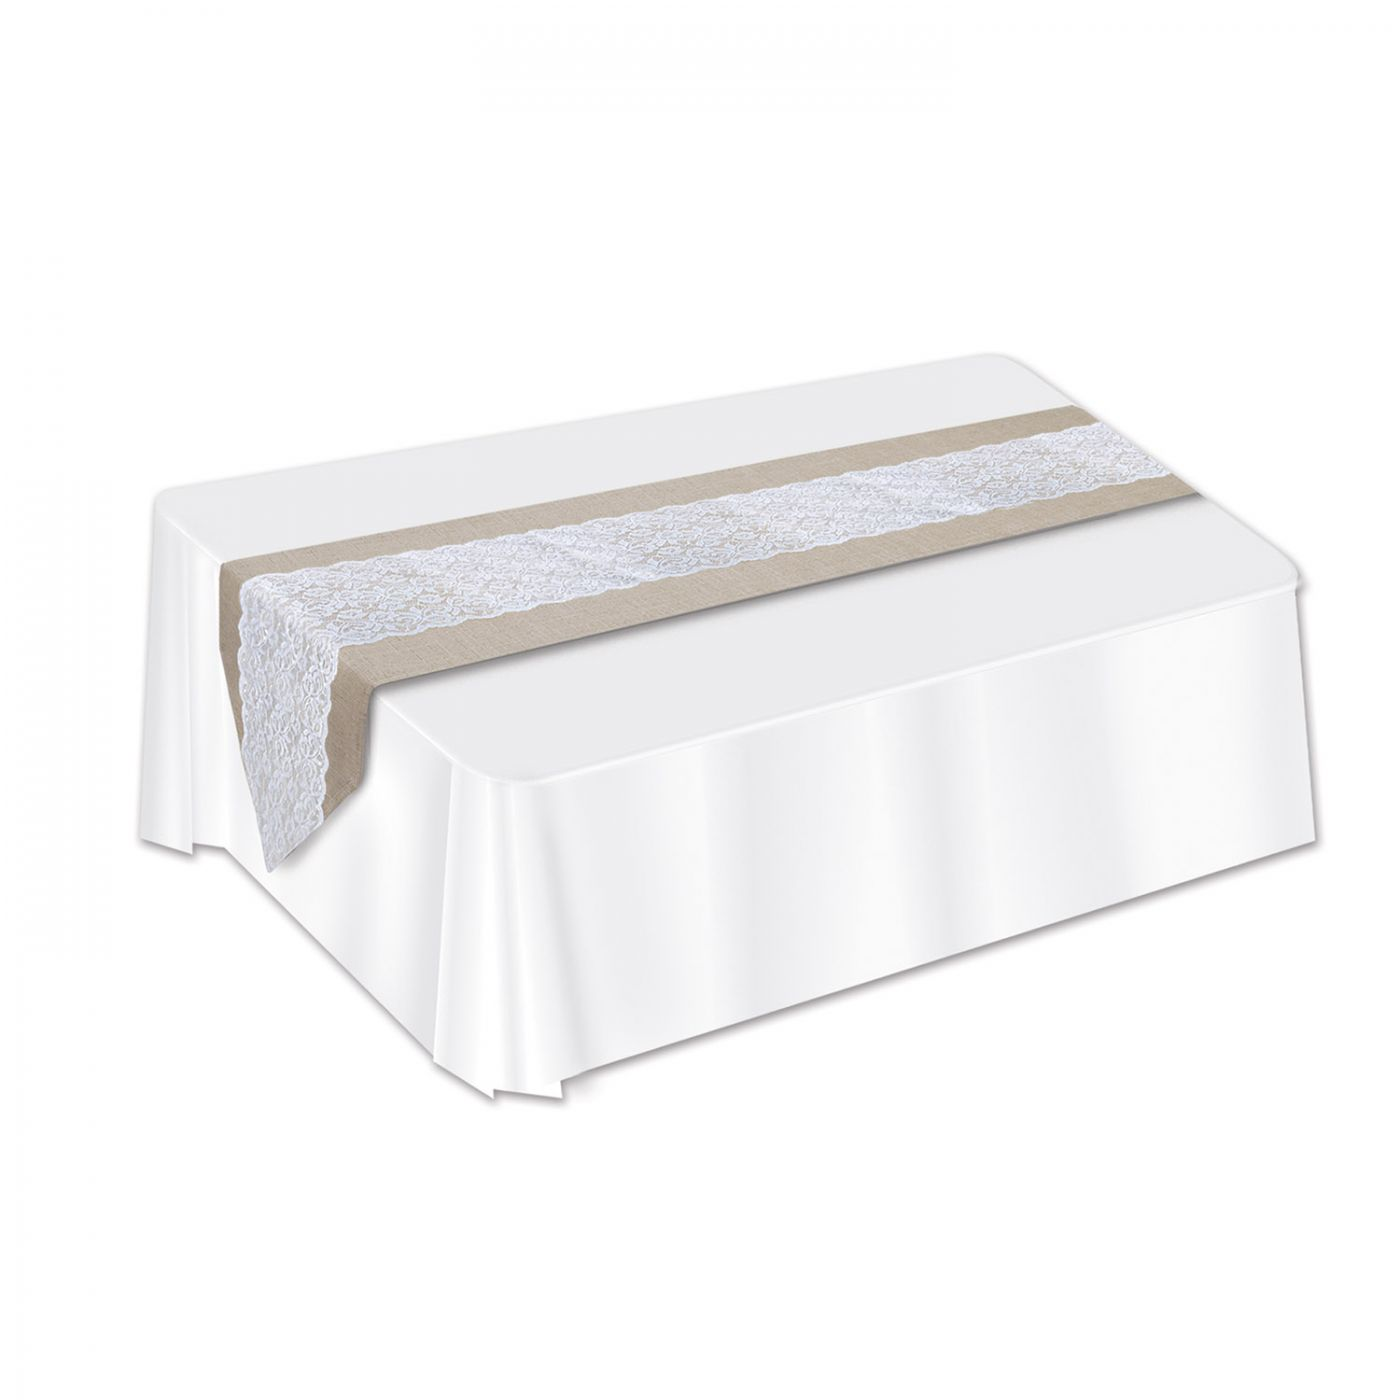 Lace & Burlap Table Runner image